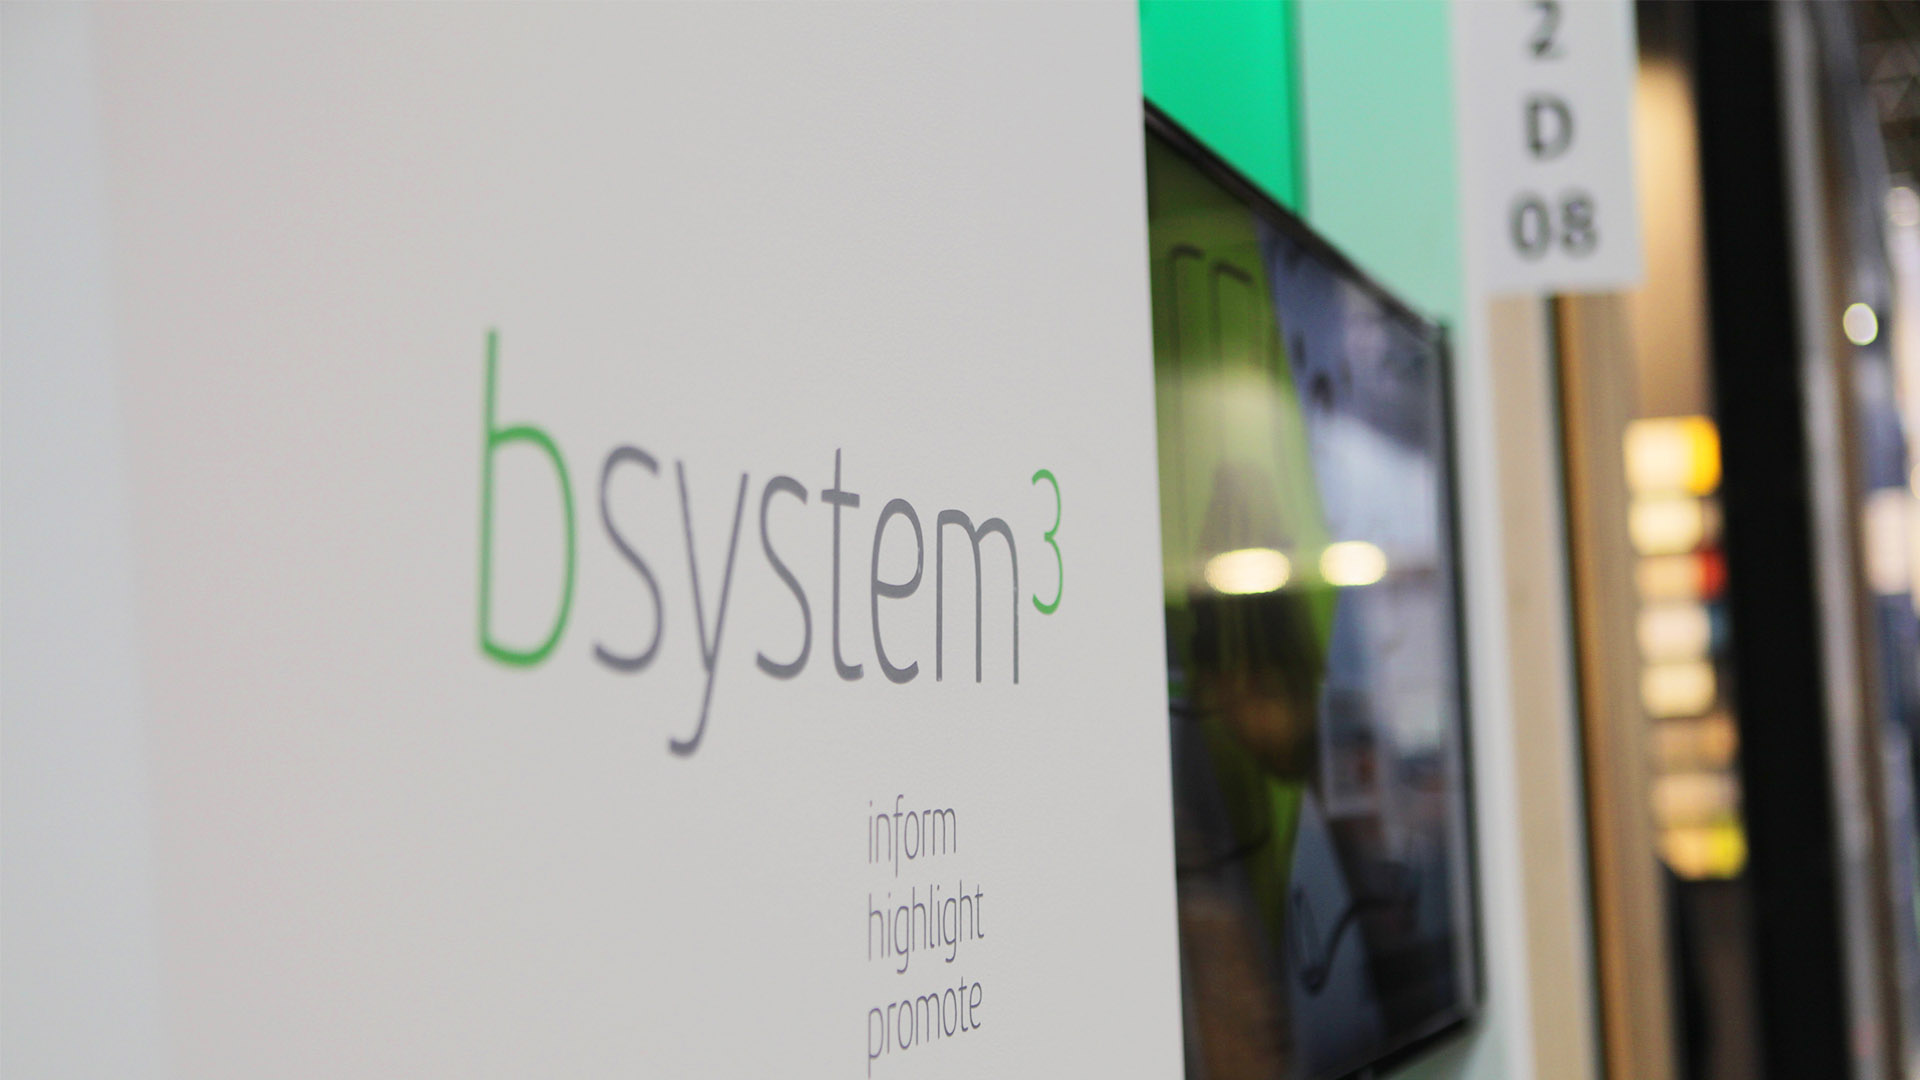 Stand bsystem3